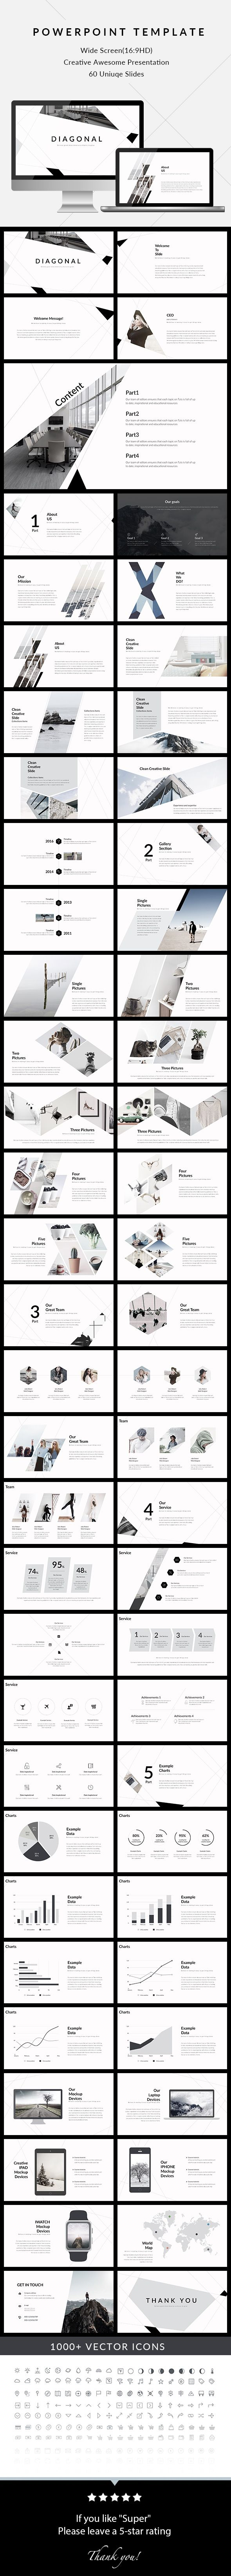 Diagonal - Clean & Creative PowerPoint Presentation  #marketing #pptx template • Download ➝ https://graphicriver.net/item/diagonal-clean-creative-powerpoint-presentation/18038771?ref=pxcr                                                                                                                                                                                 More